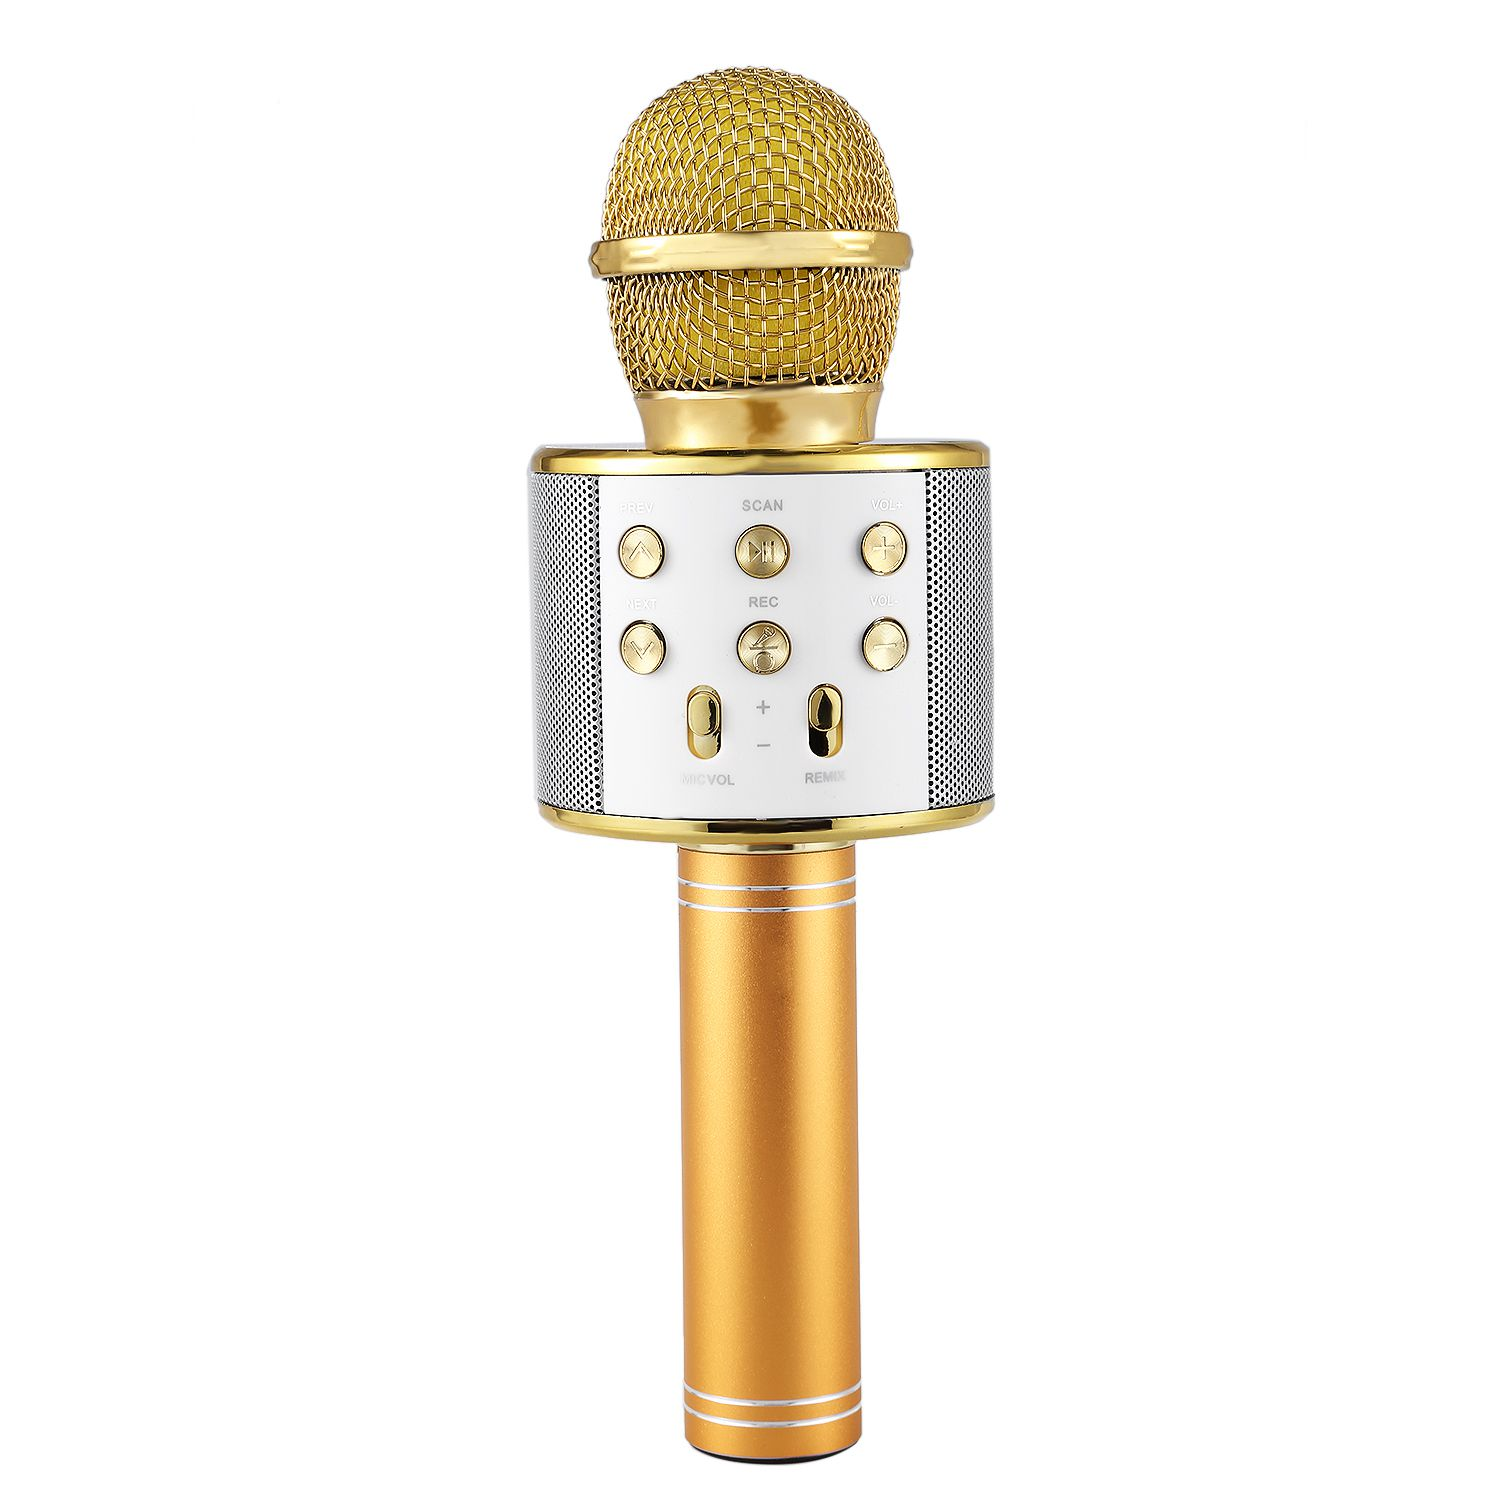 Professional Bluetooth Wireless Microphone Karaoke Microphone Speaker Handheld Music Player MIC Singing Recorder KTV Microphone(China)